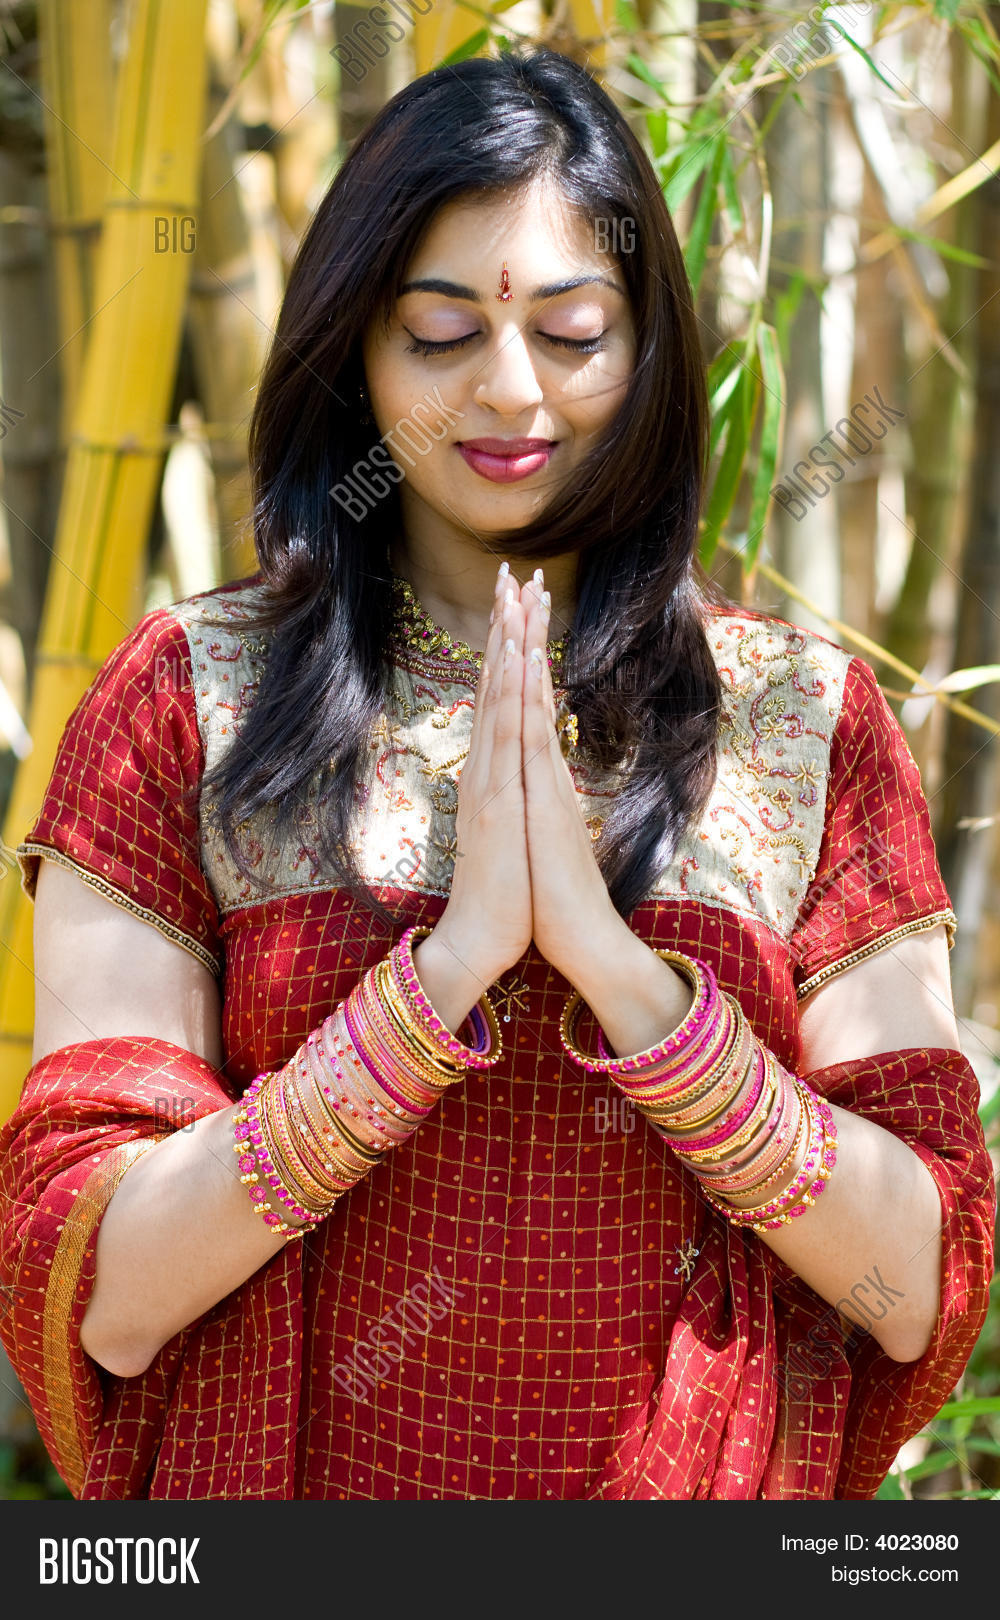 gully hindu single women Hindu women connecting singles is a 100% free hindu singles site where you can make friends and meet hindu women find an activity partner, new friends, a cool date or a soulmate, for a casual or long term relationship.